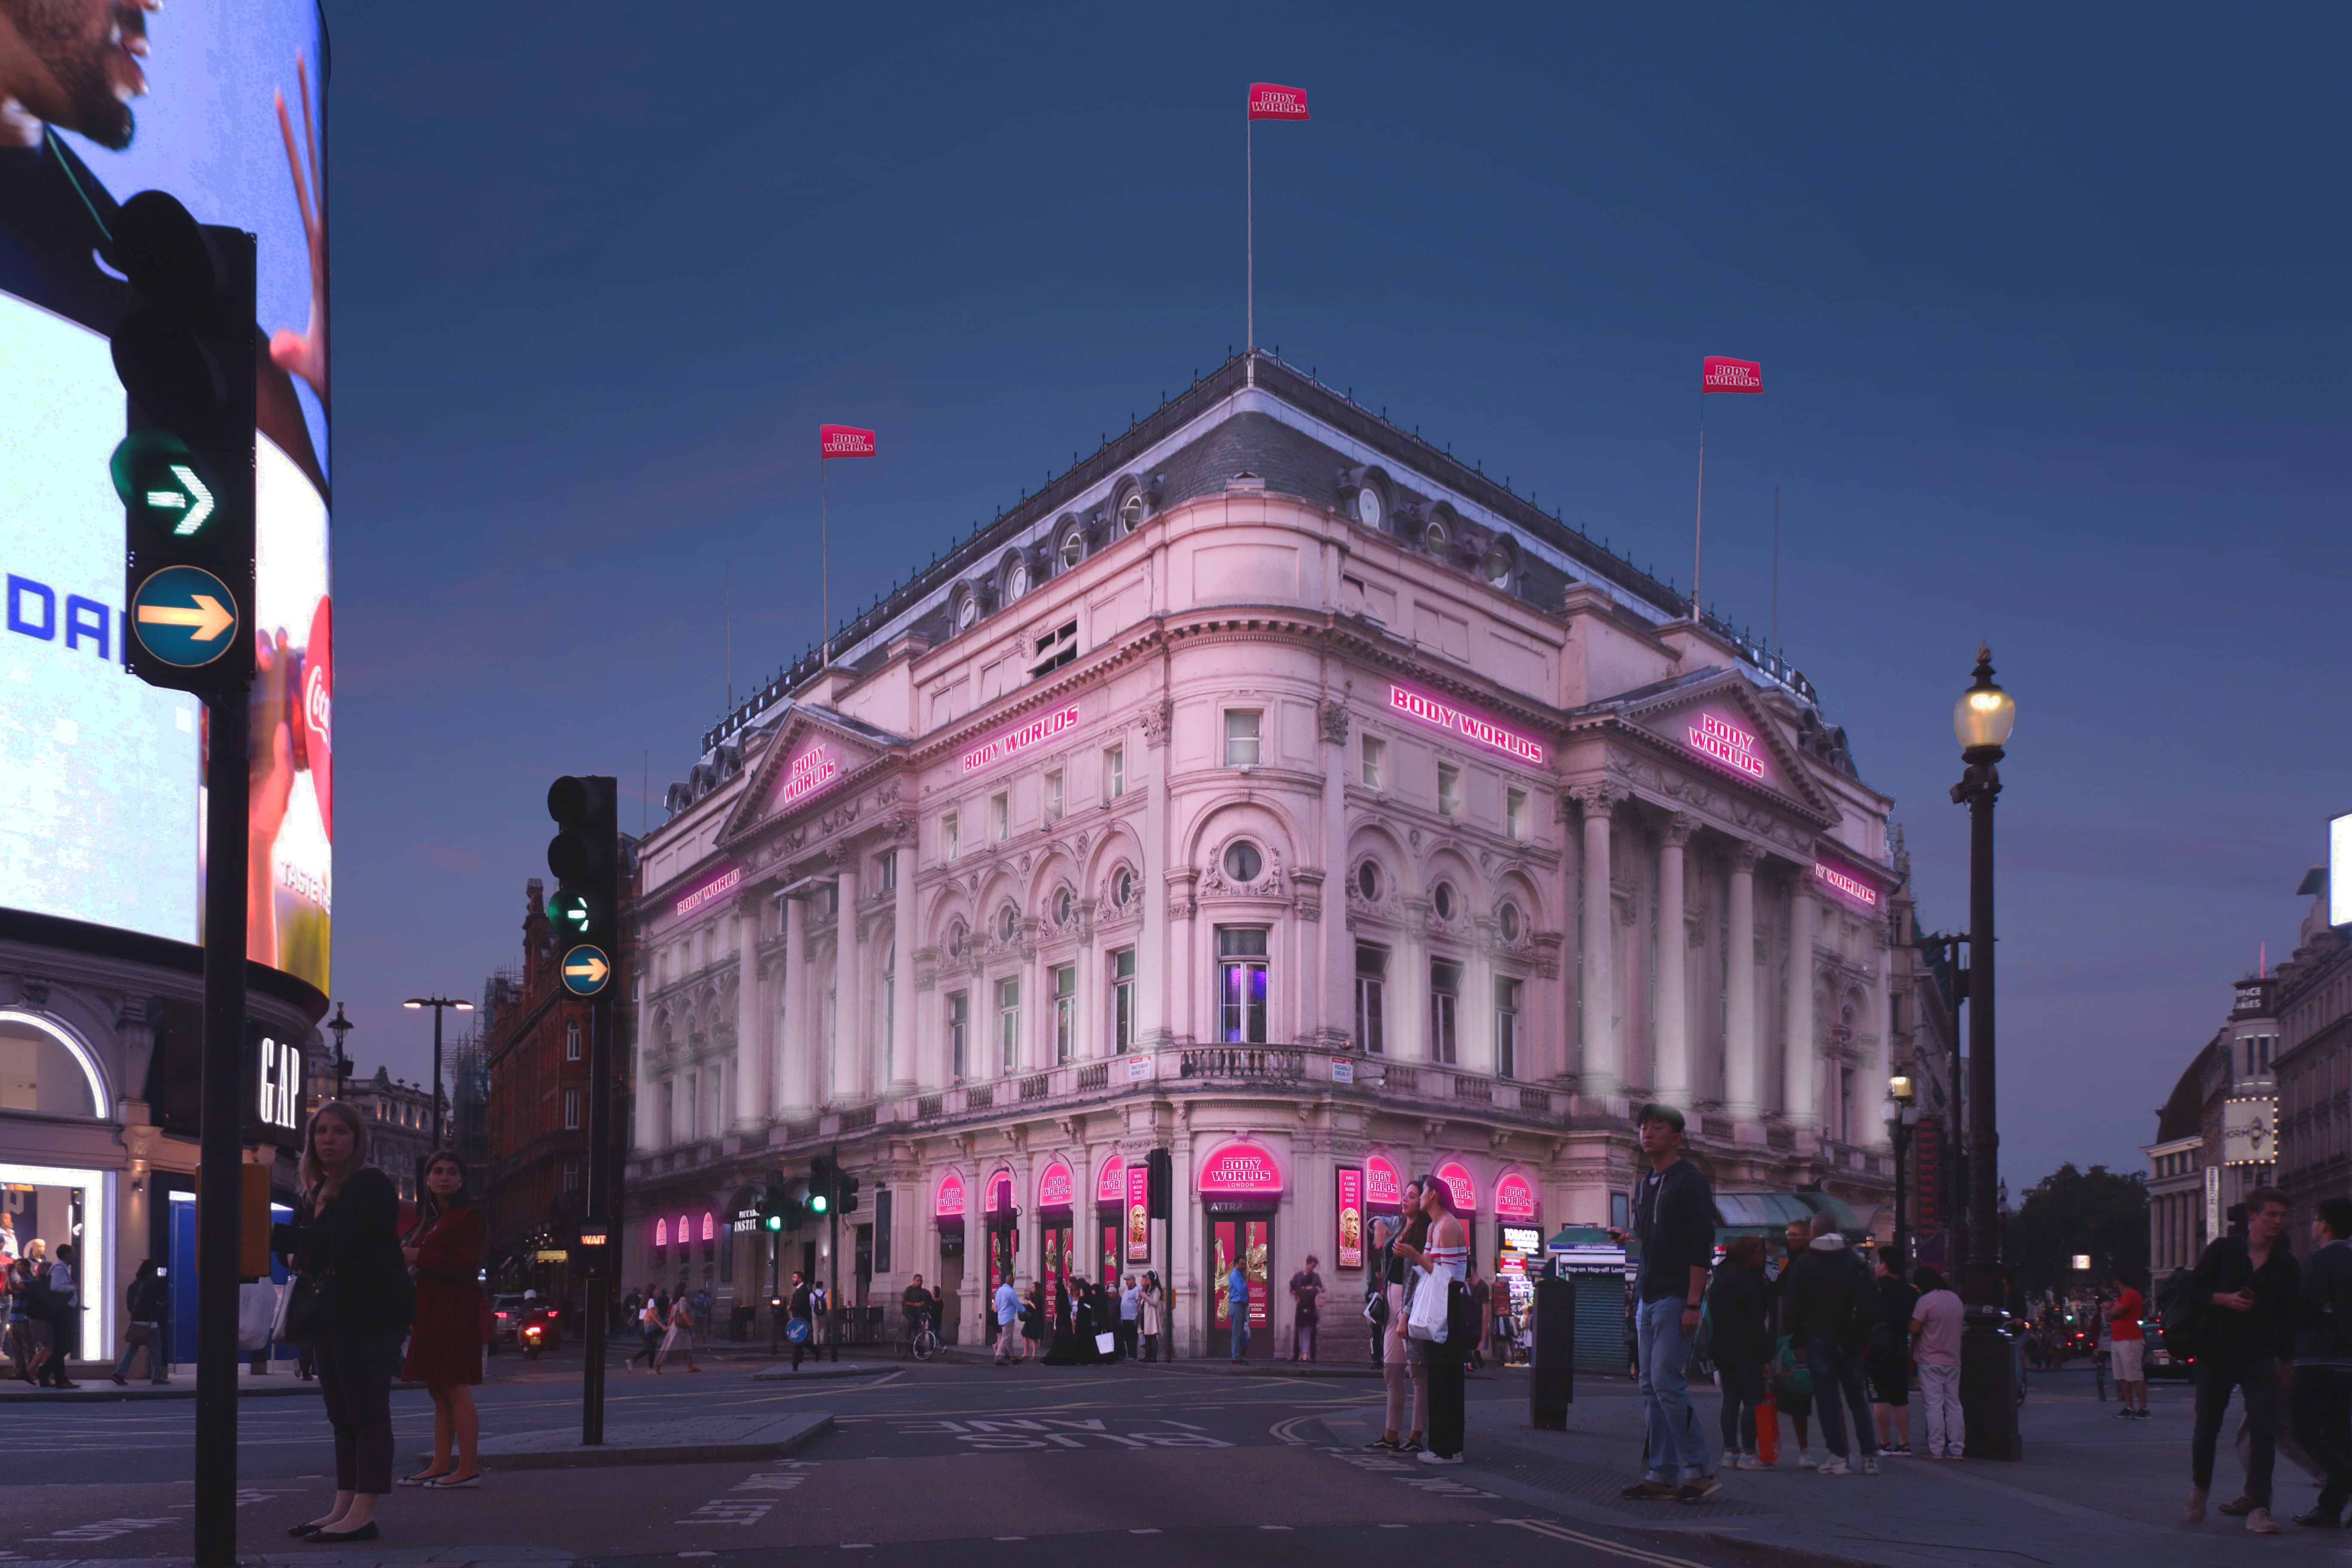 The London Pavilion in Piccadilly Circus